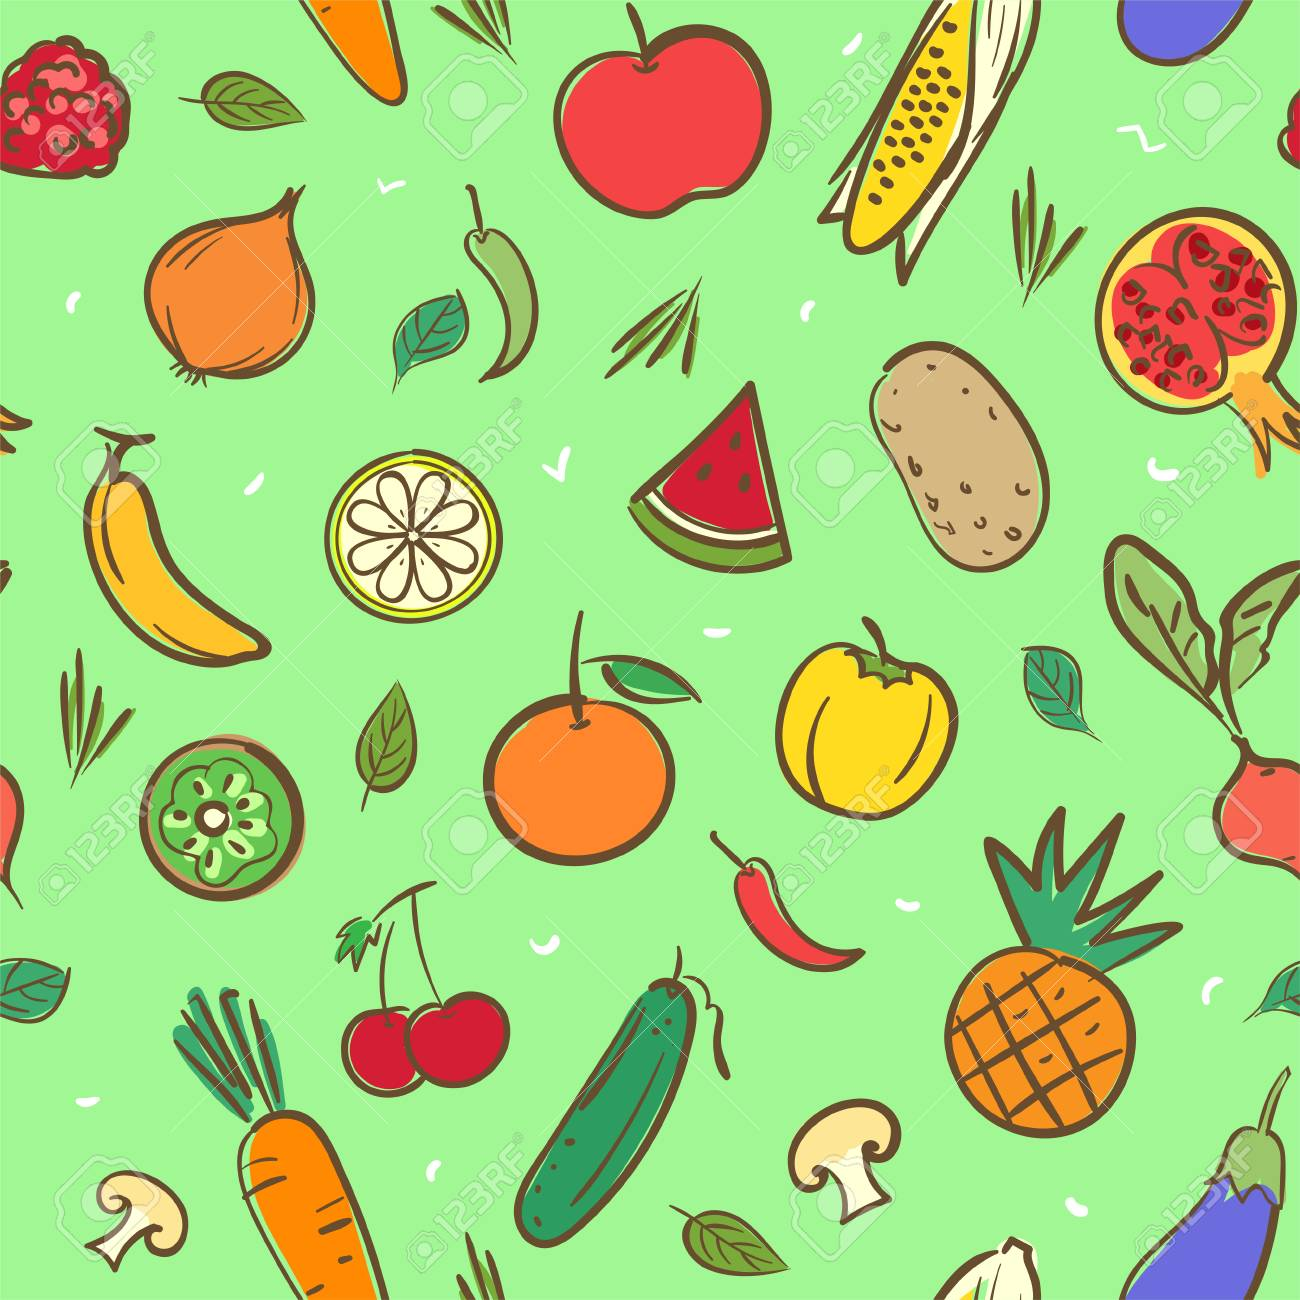 Cute Mix Fruits And Vegetables Seamless Pattern Background Vector